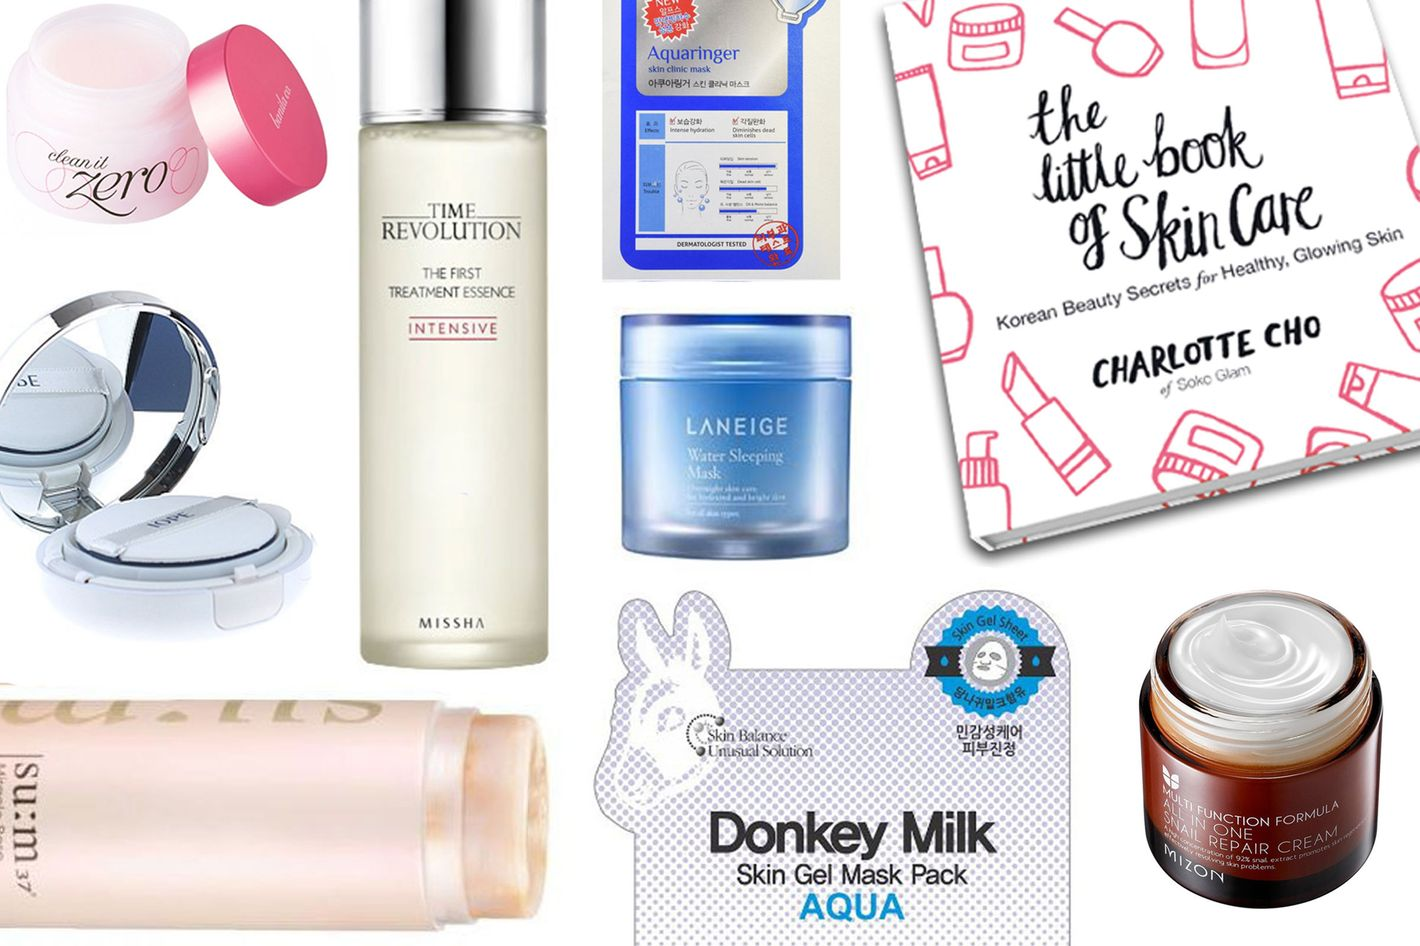 Quench Beauty Products